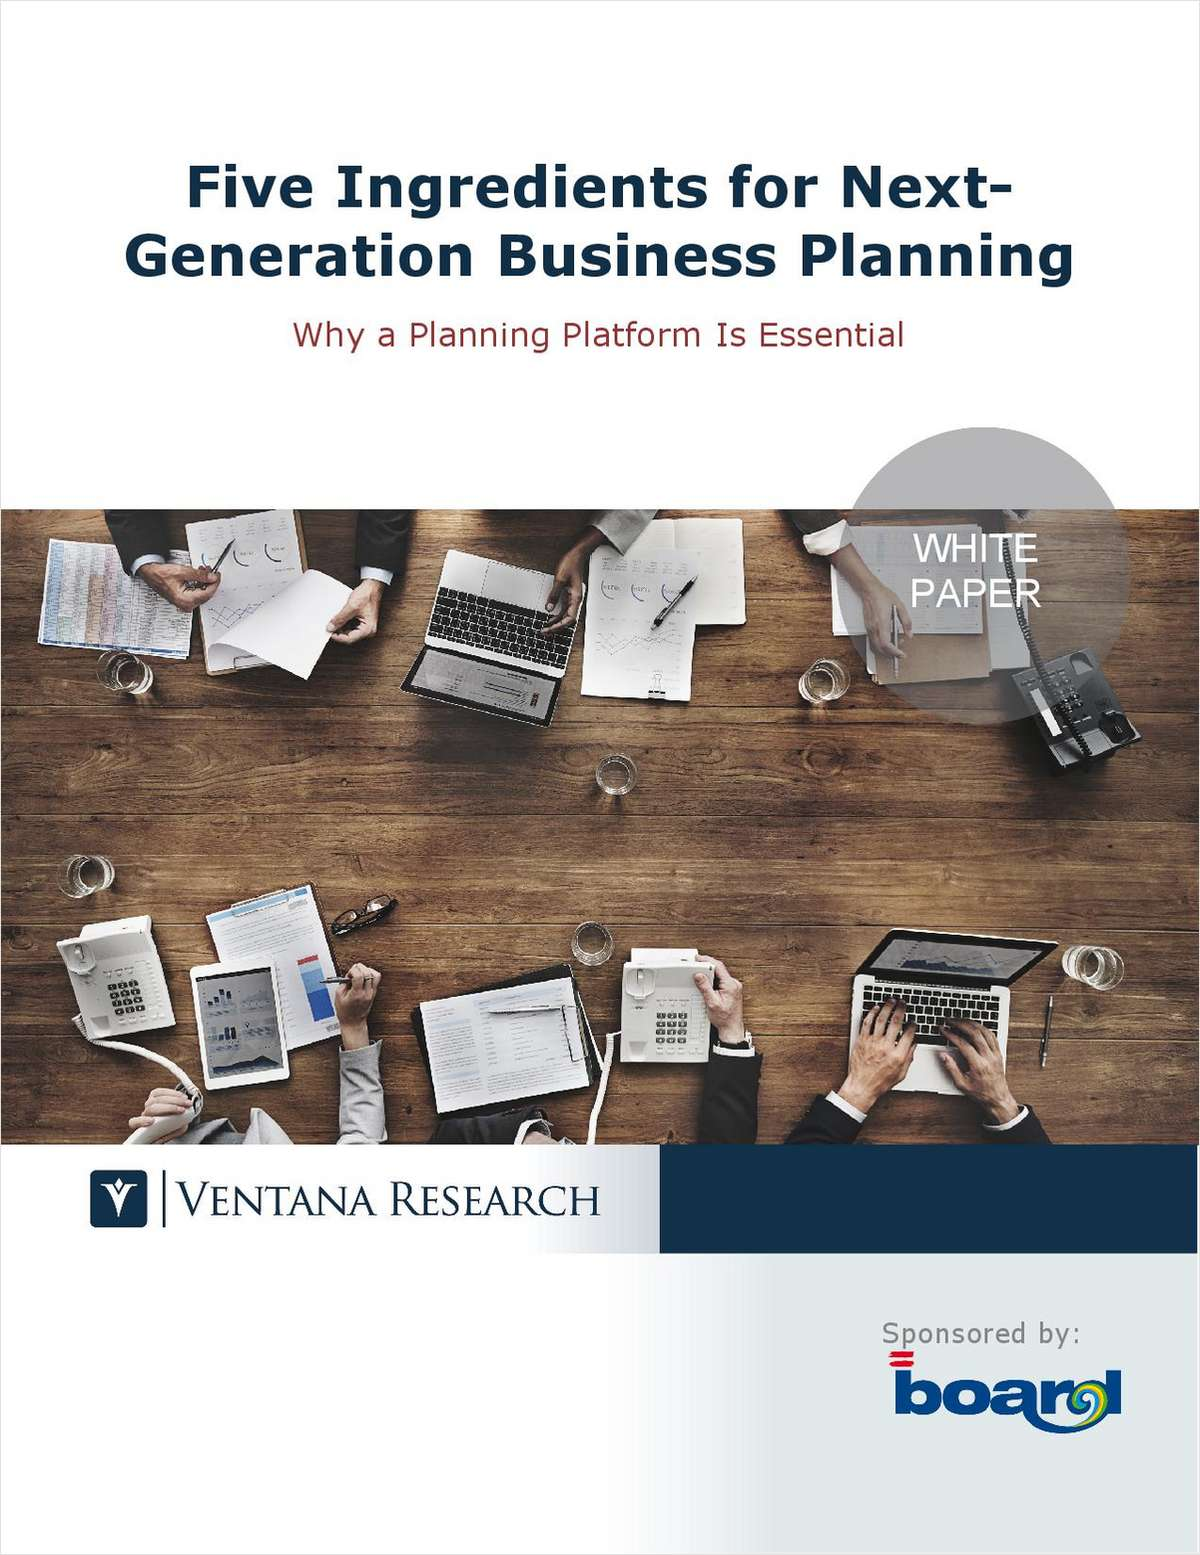 Ventana Research: Five Ingredients for Next-Generation Business Planning